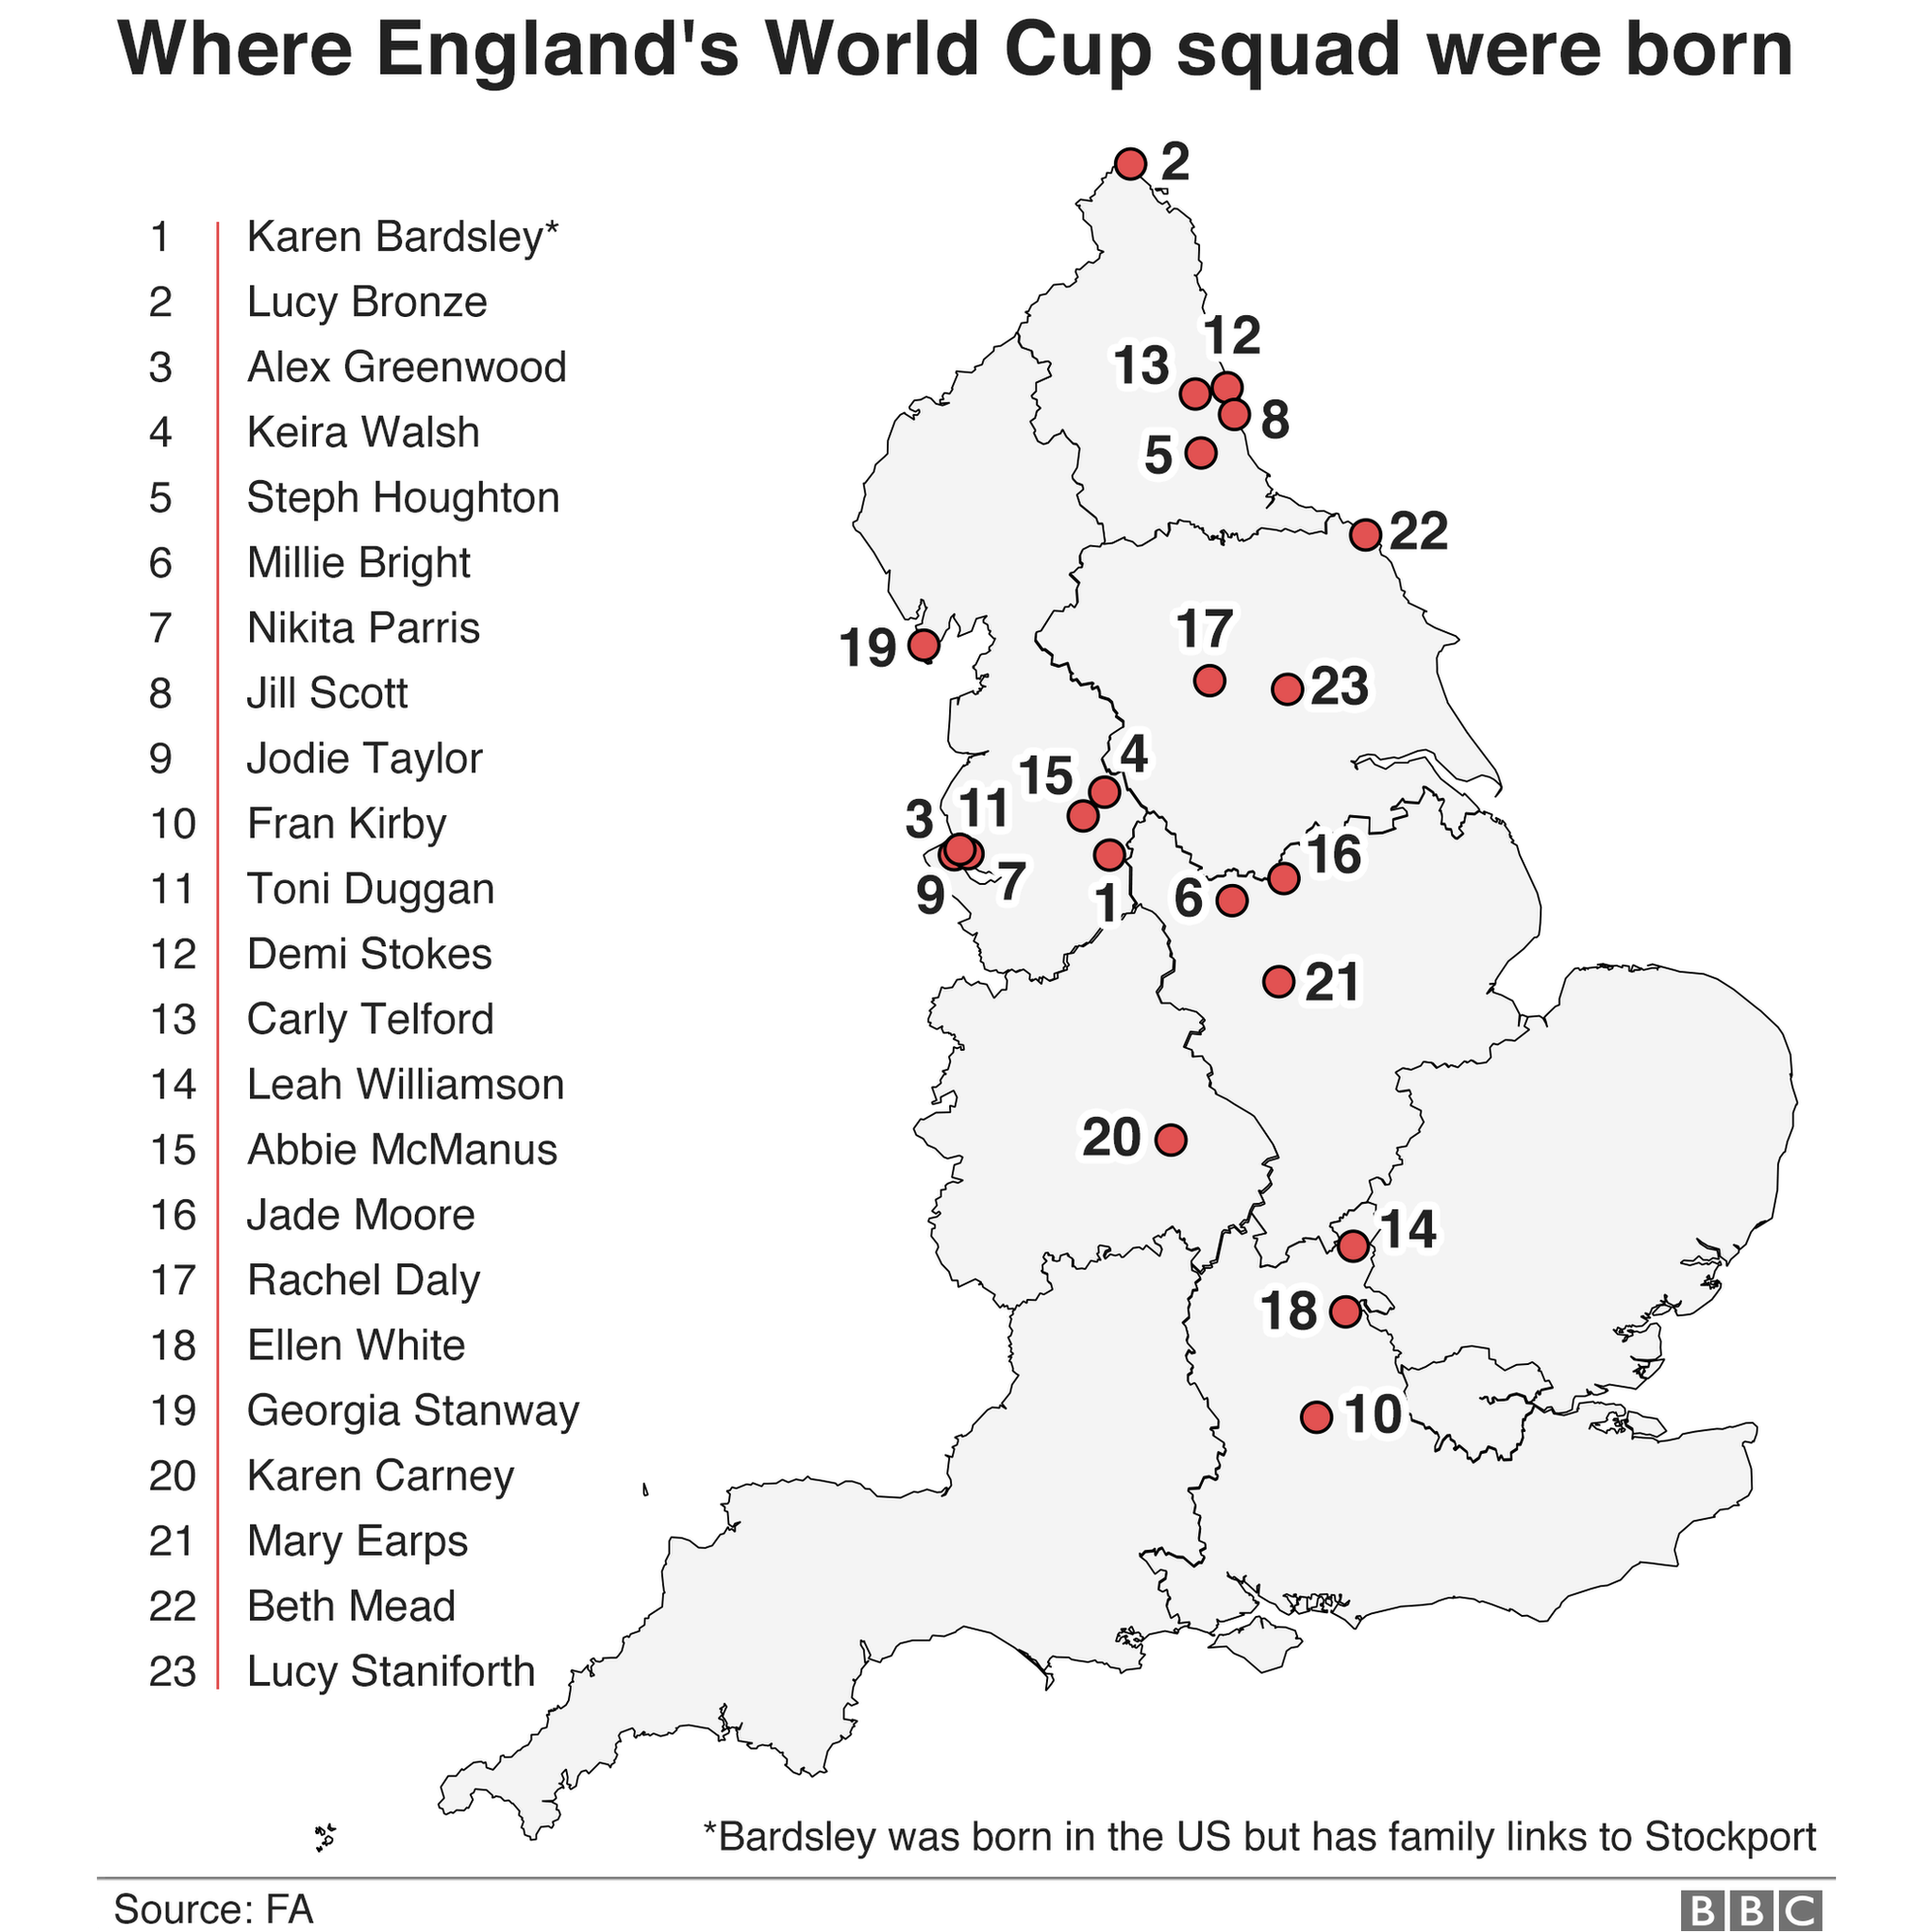 Women's World Cup 2019: Mapping England's Lionesses squad